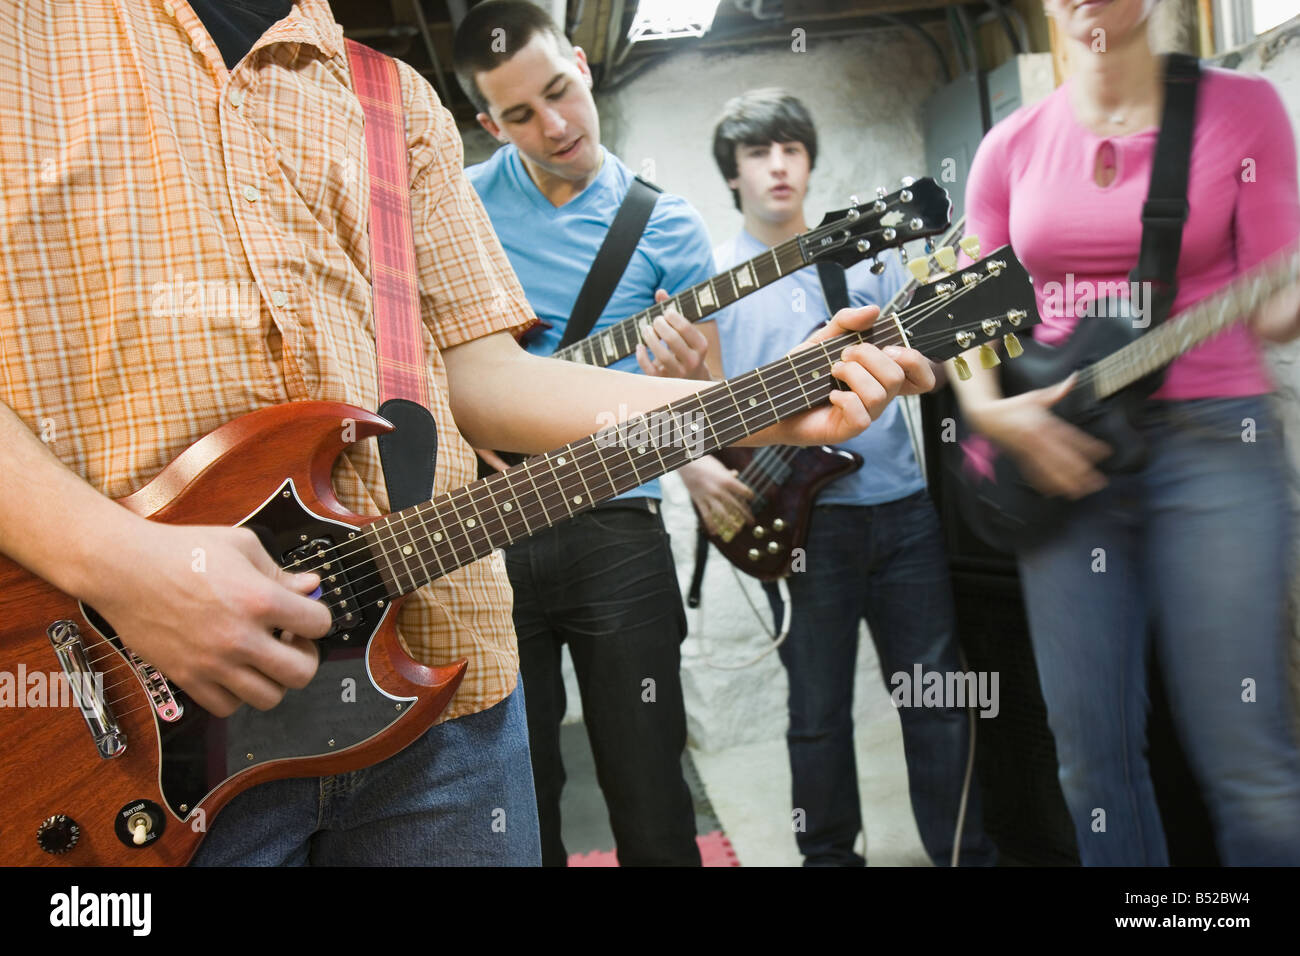 Musical band practicing - Stock Image